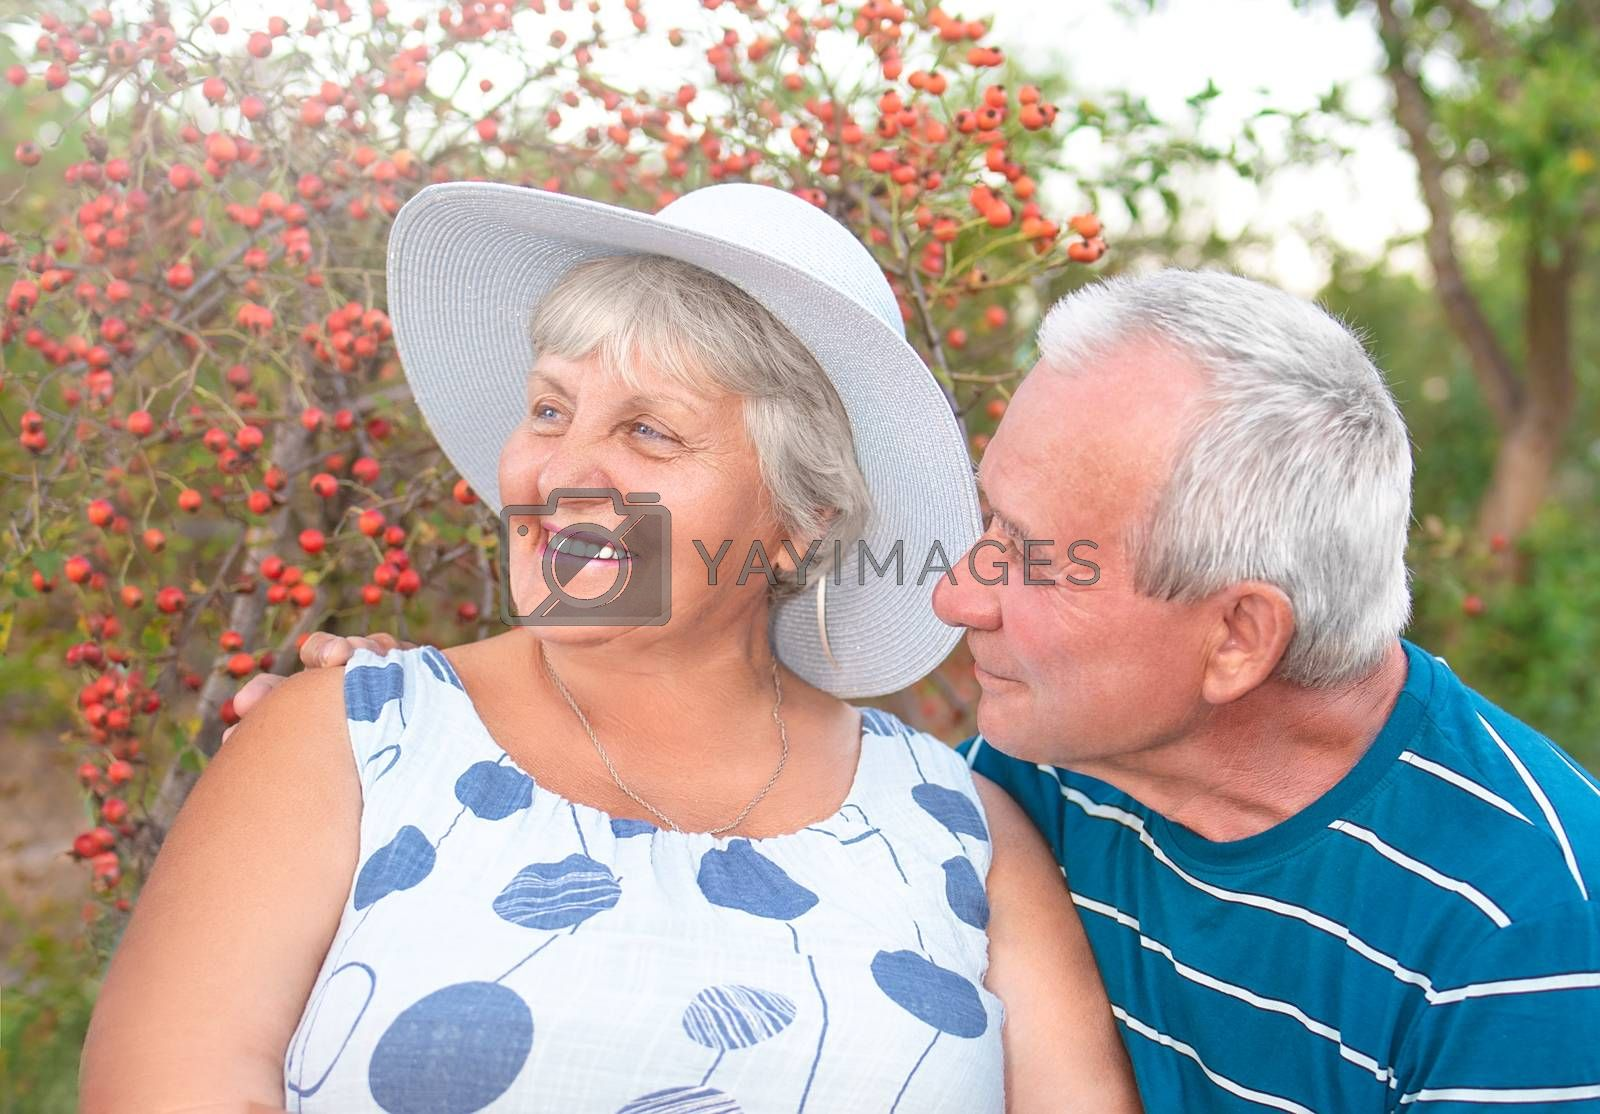 Authentic outdoor shot of aging couple having fun in the garden and blessed with love. During their game man is trying to kiss his partner and she is laughing out loud. Love and family concept.